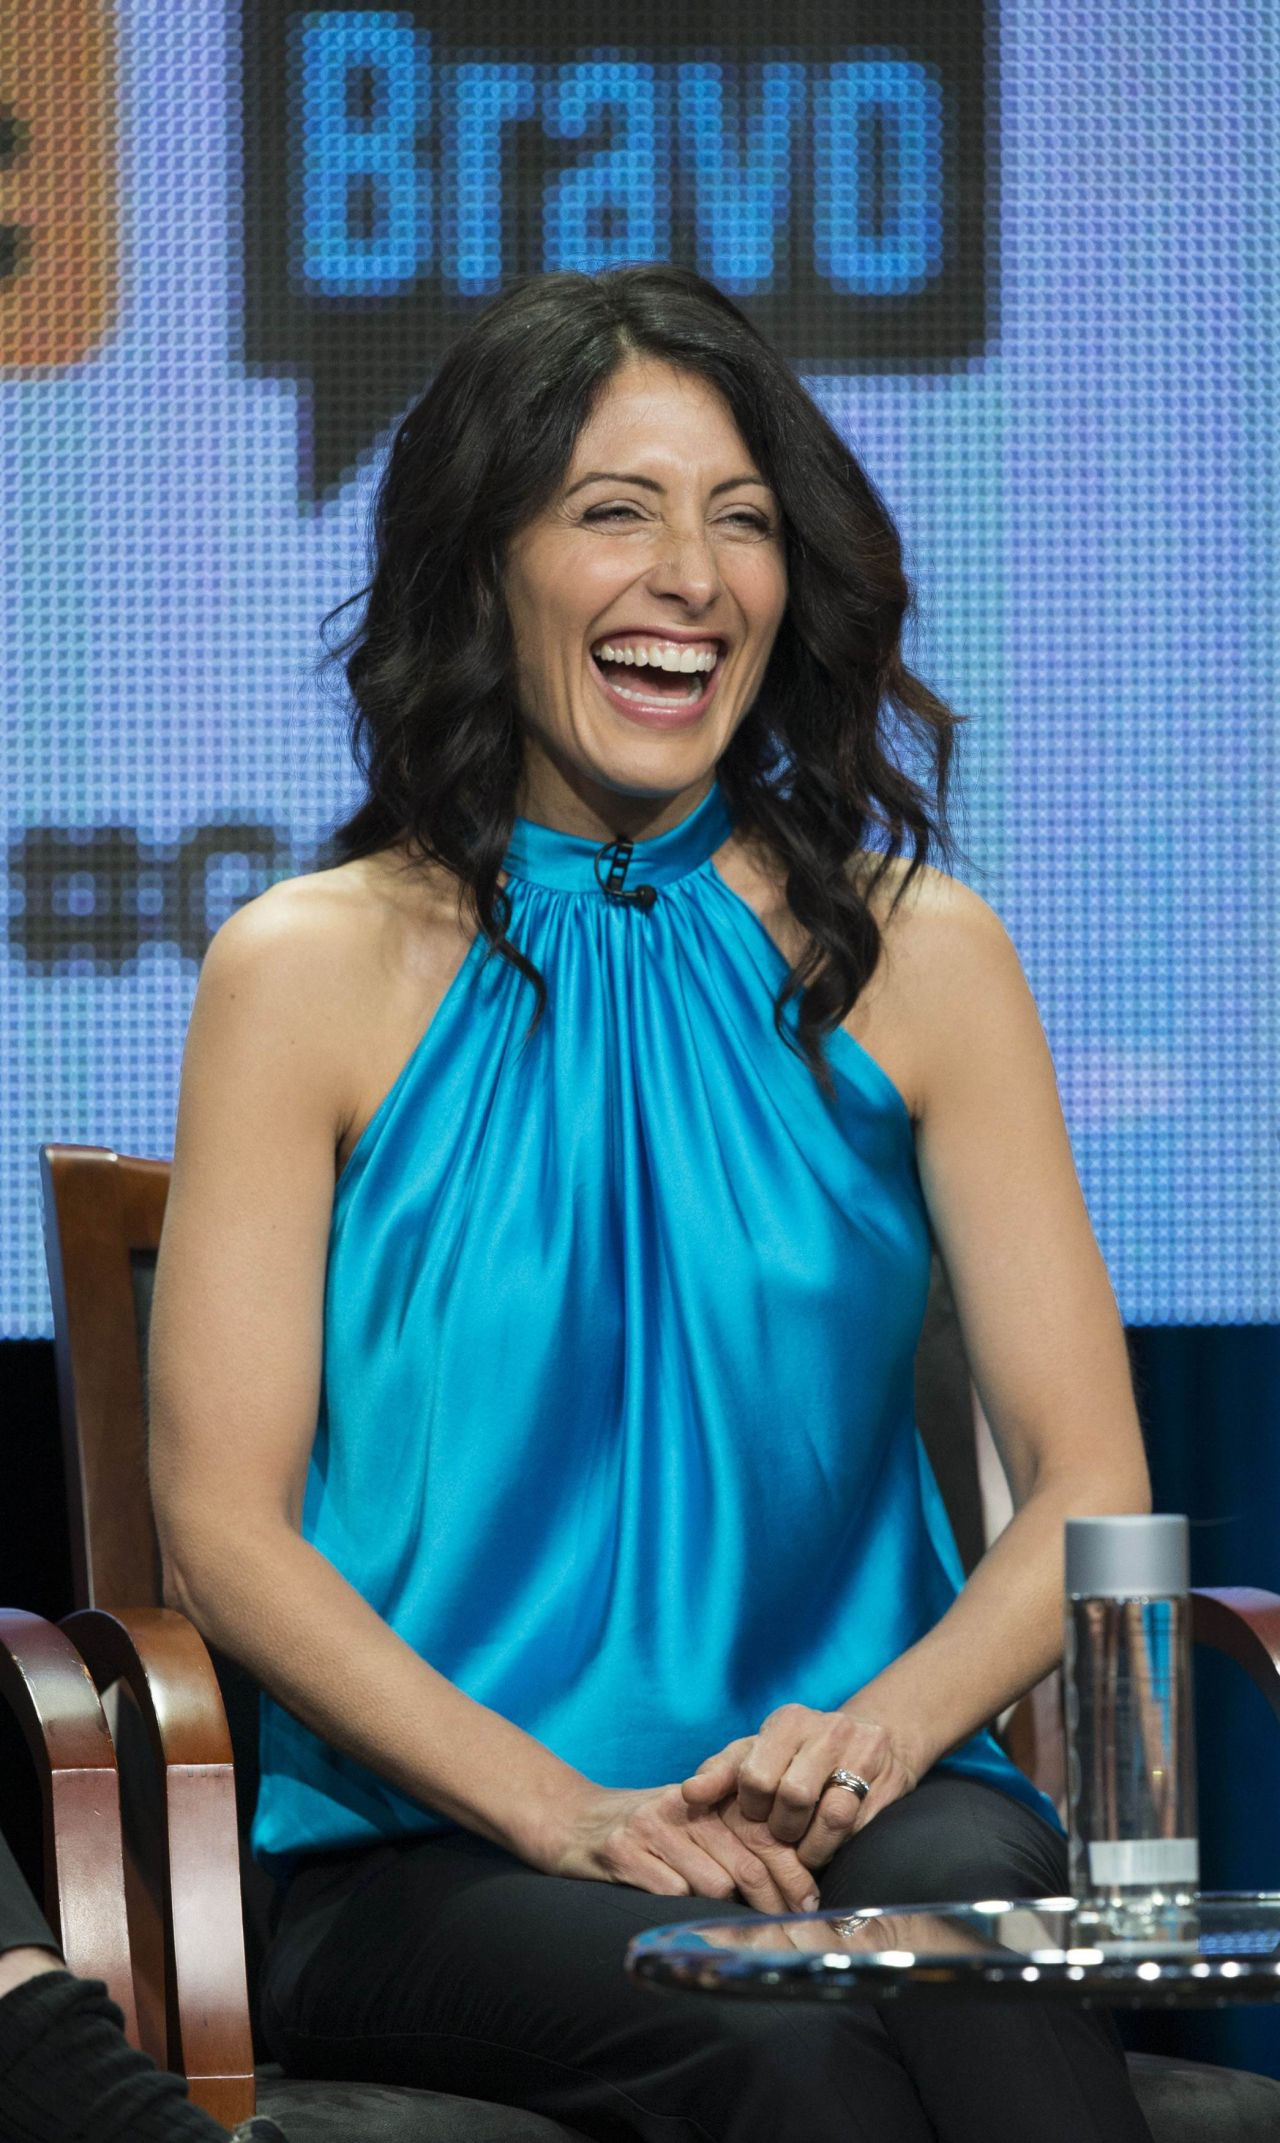 Lisa edelstein necar zadegan guide to divorce s2e12 - 3 2